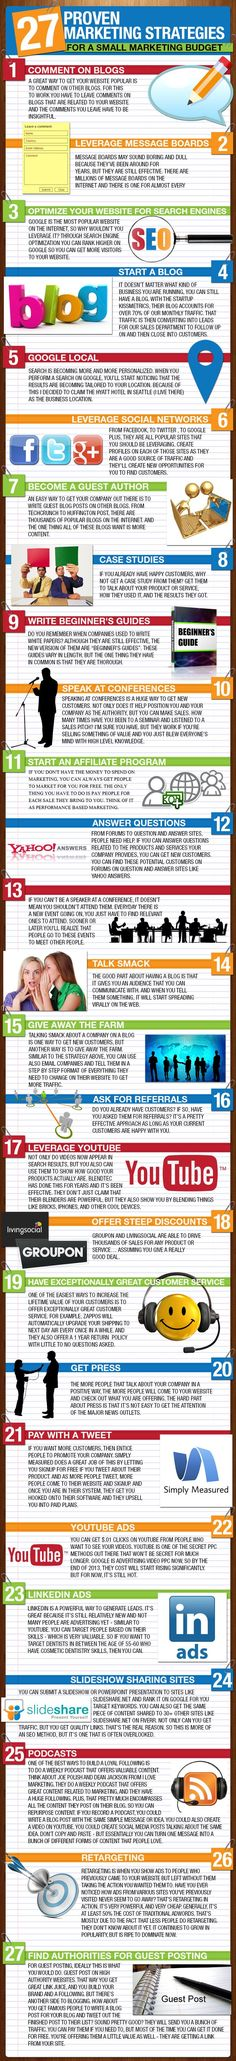 27 Proven Best Marketing Strategies For A Tiny Budget. This is why I love social marketing for small business - so many of these tips rely on having on online presence. This infographic explains all the social media and beyond. Social Marketing, Inbound Marketing, Budget Marketing, Mundo Marketing, Marketing Trends, Marketing Online, Small Business Marketing, Marketing Tools, Marketing And Advertising